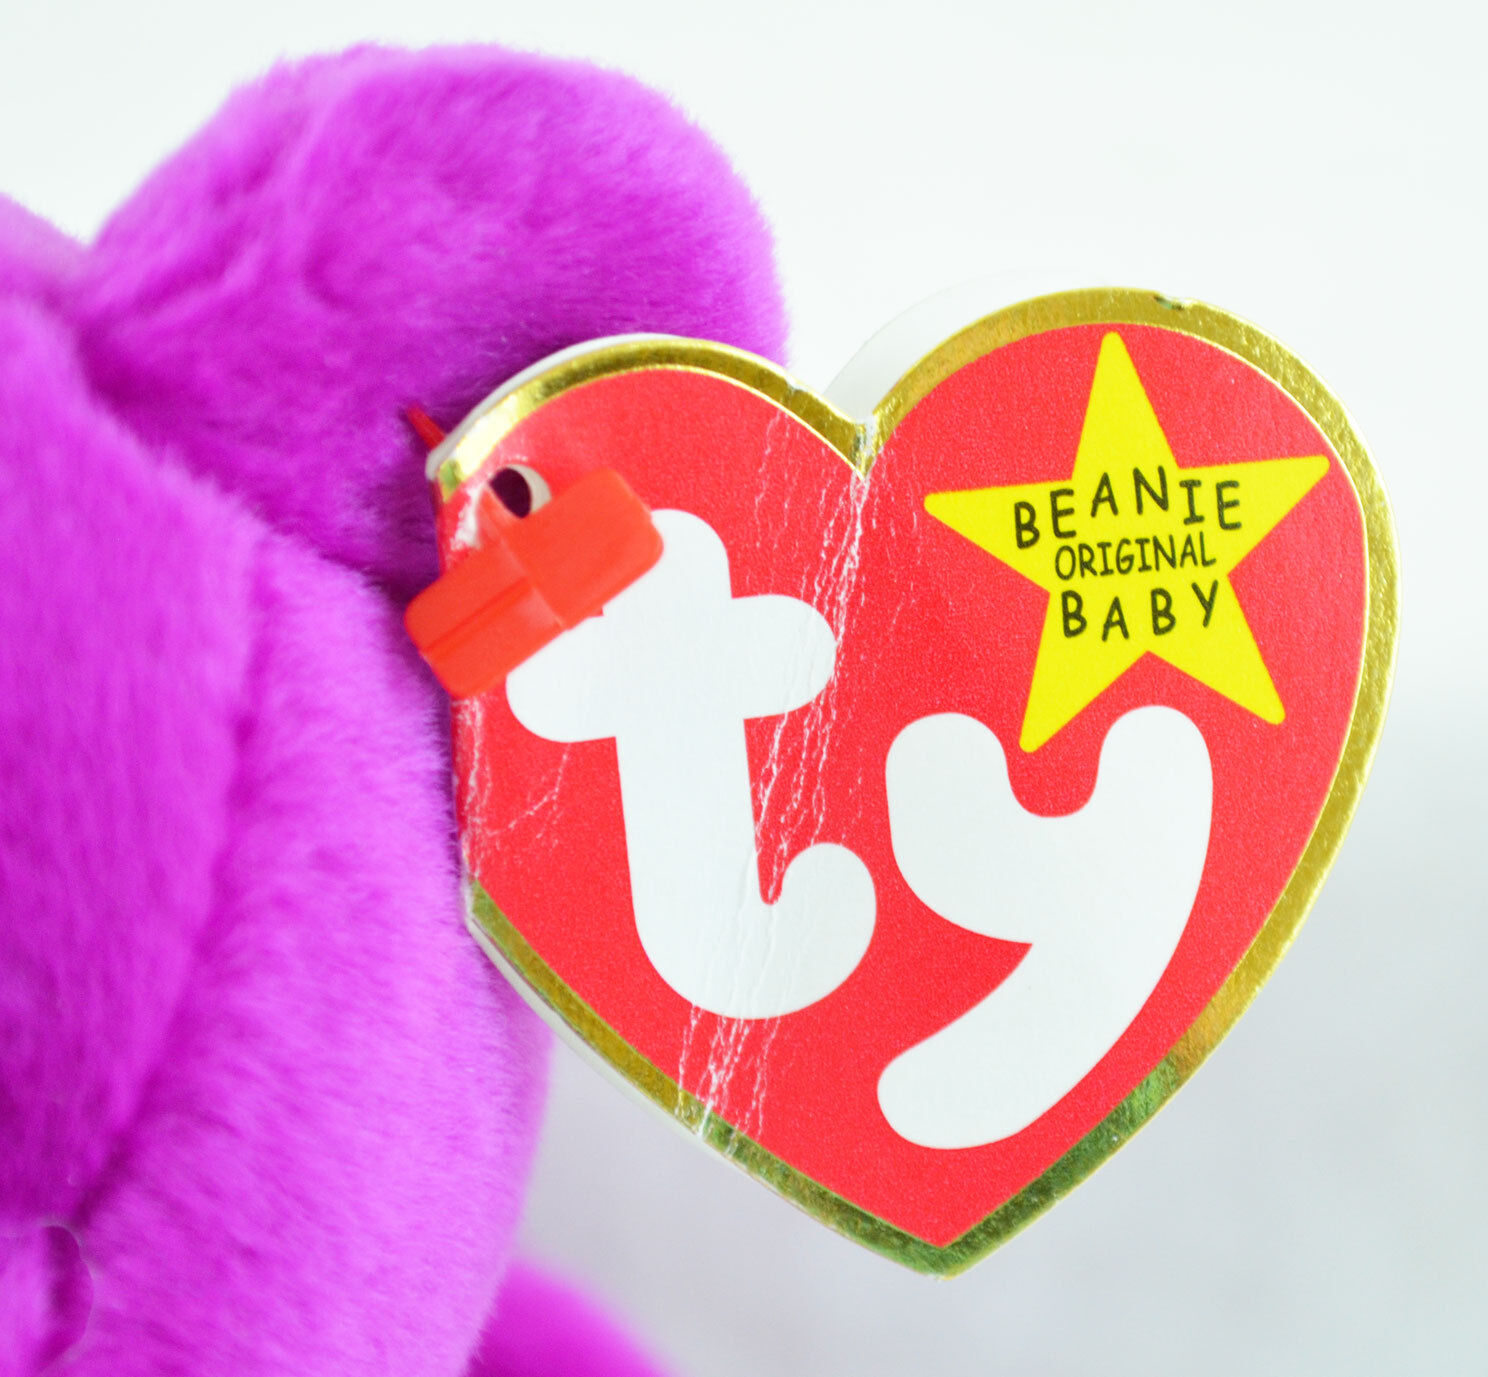 TY BEANIE BABIES  MILLENNIUM  BEAR Great Condition Condition Condition RETIRED Very Rare - 4 ERRORS 28ccff